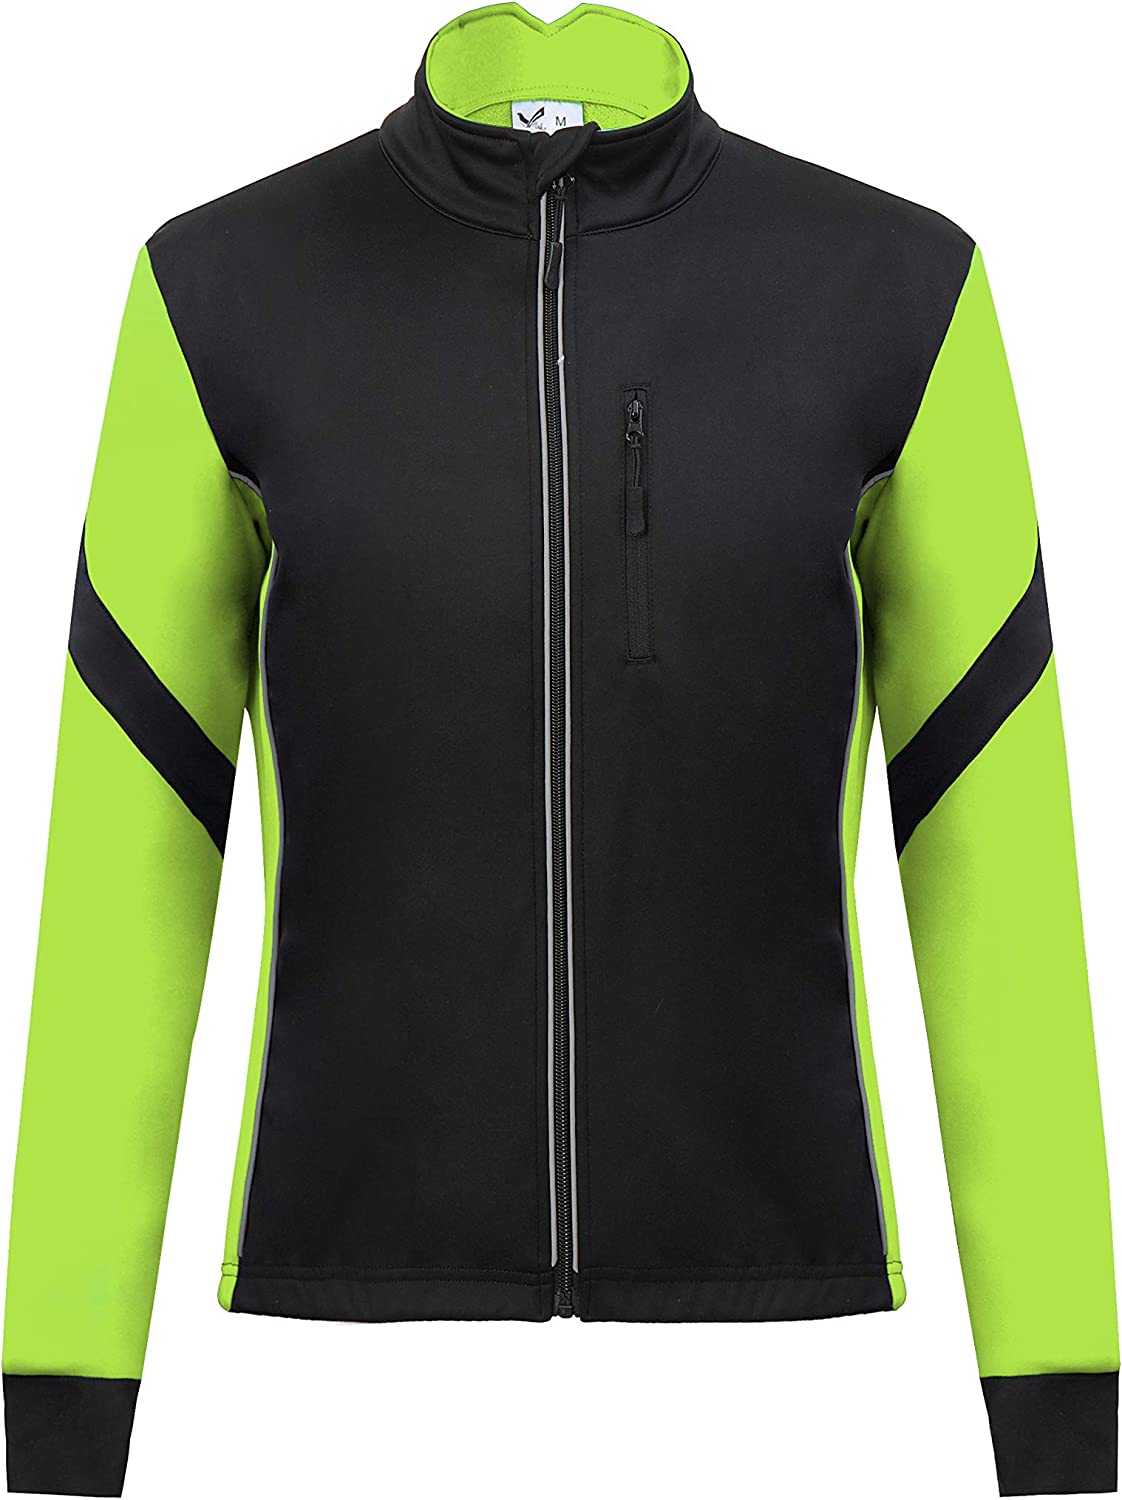 Thermal Cycling Jersey Long Sleeve Snow Water Reflective Windproof Firewall Winter Biking Jacket: Clothing